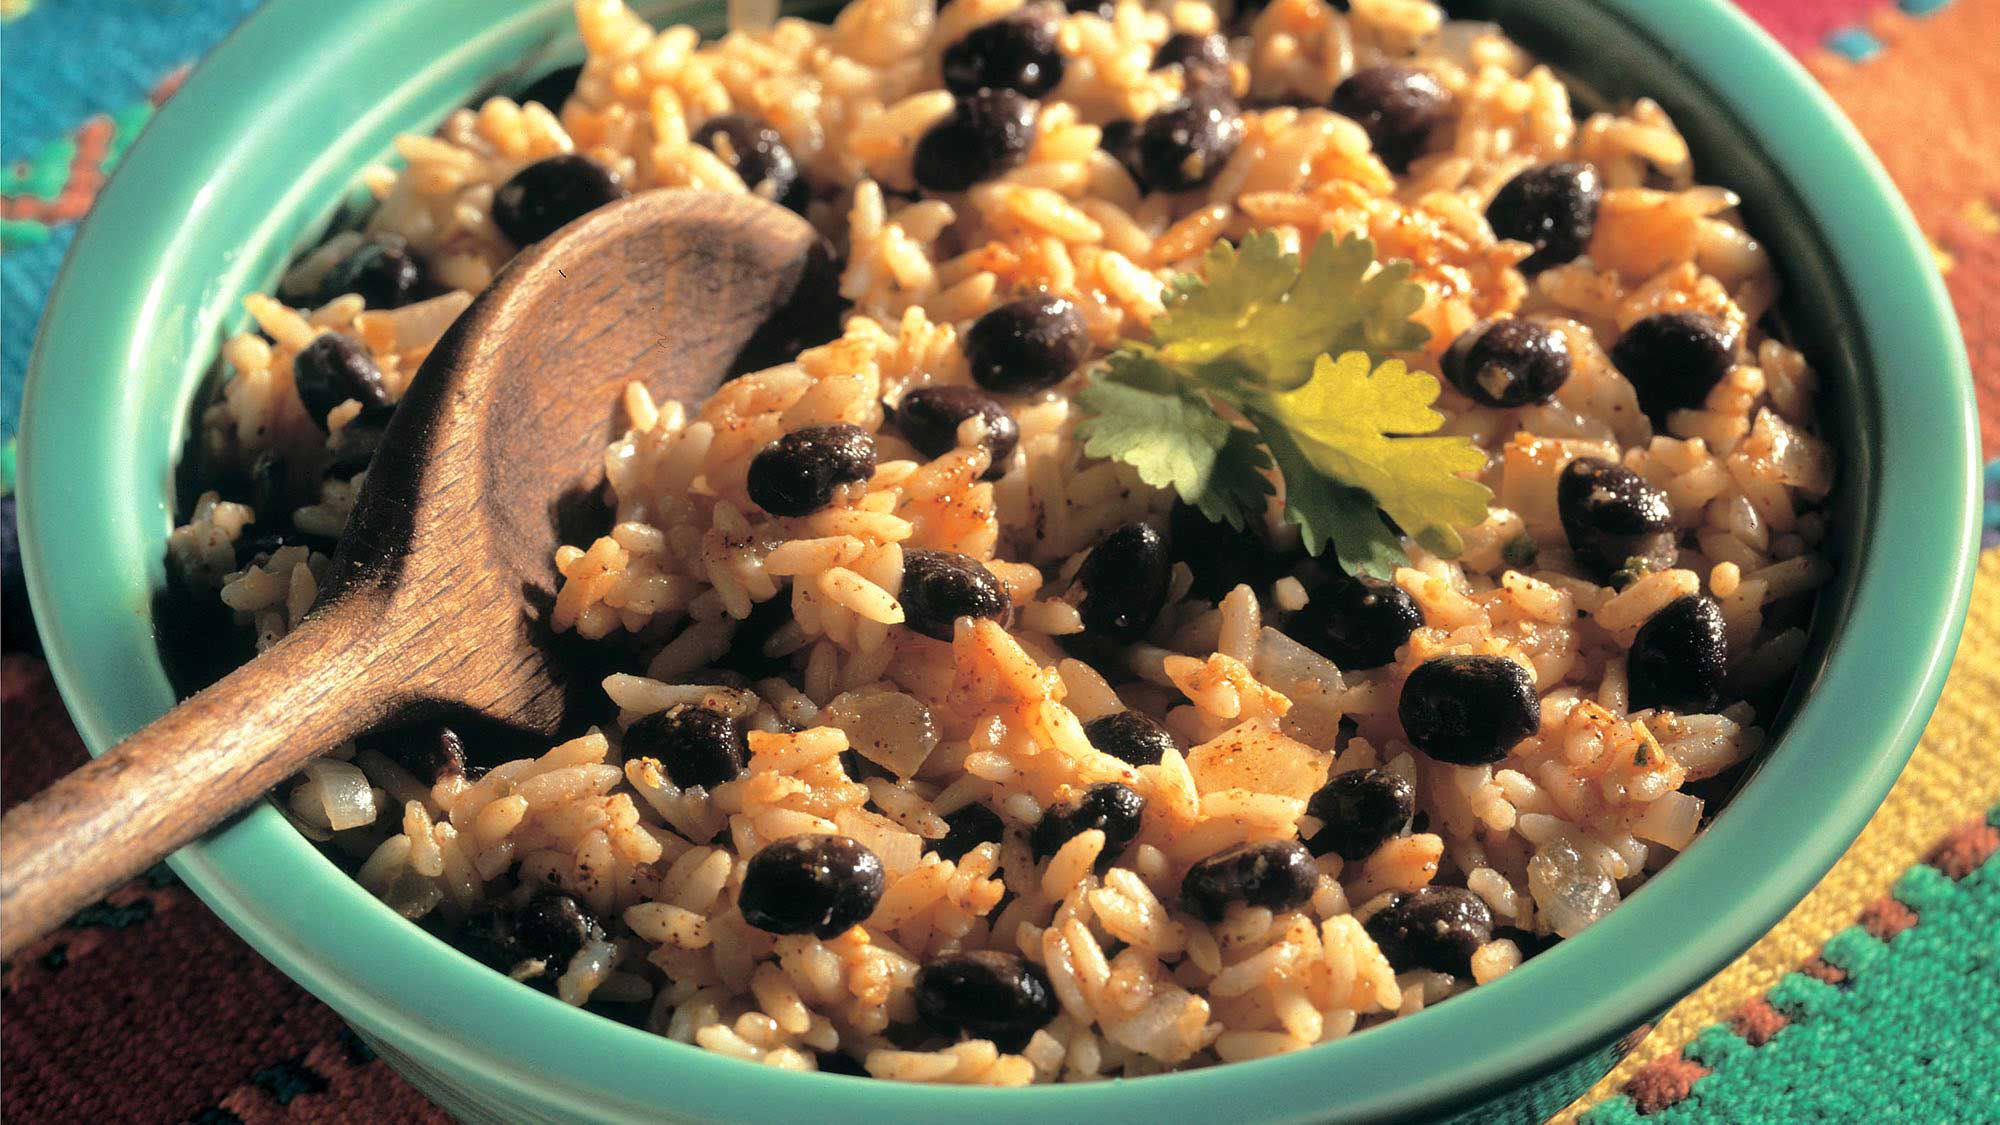 McCormick Rice and Beans